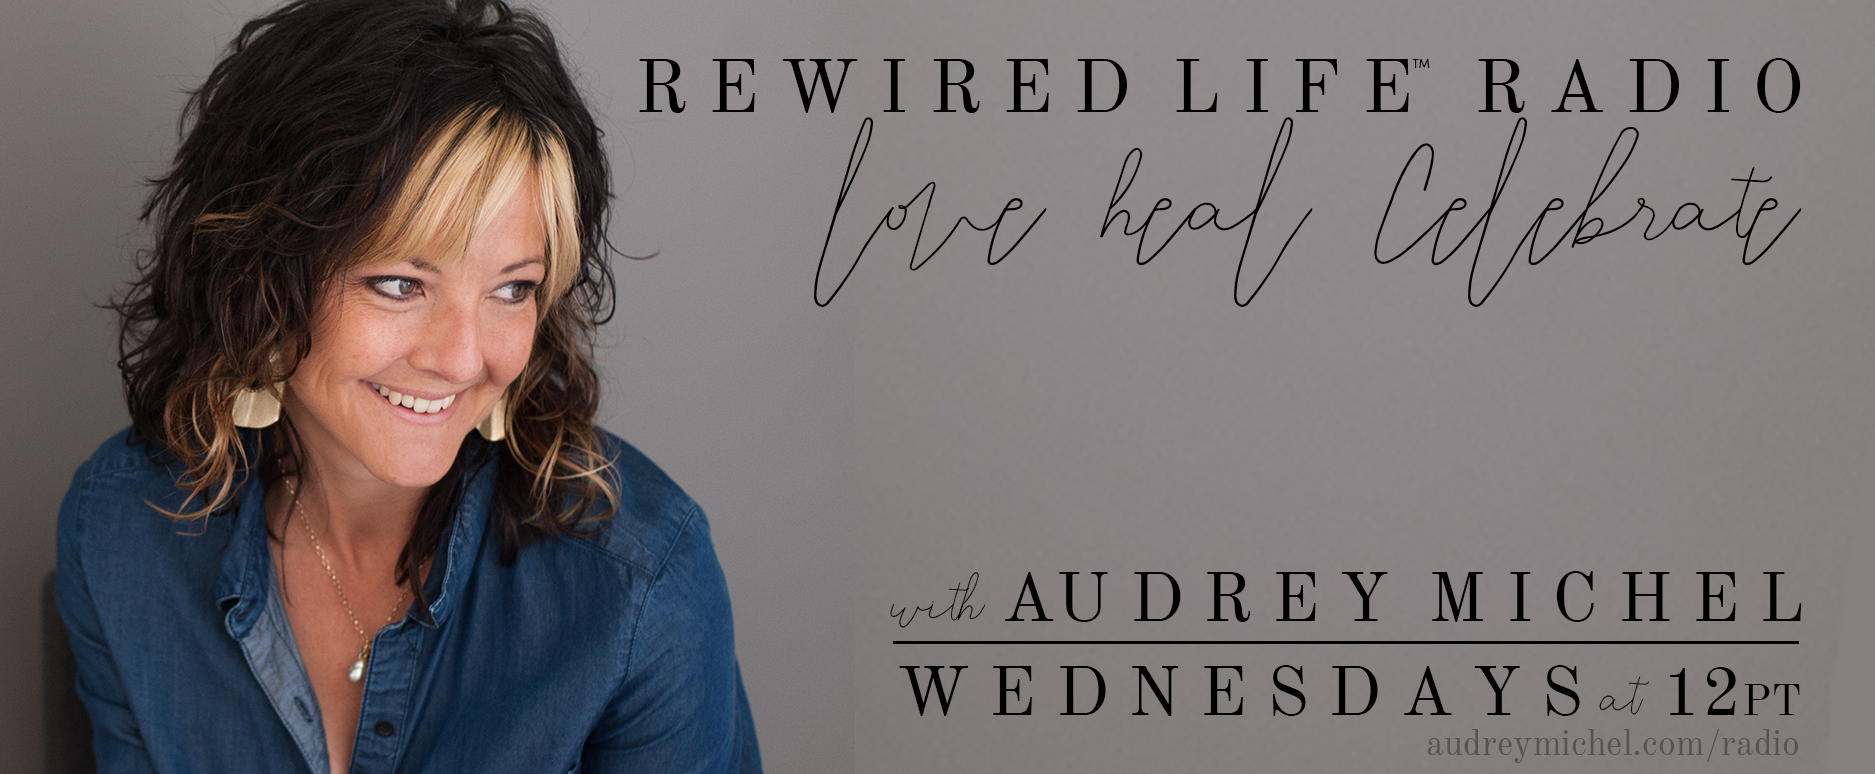 Audrey Michel. Rewired Life Radio. Author. Speaker. Spiritual Growth Coach